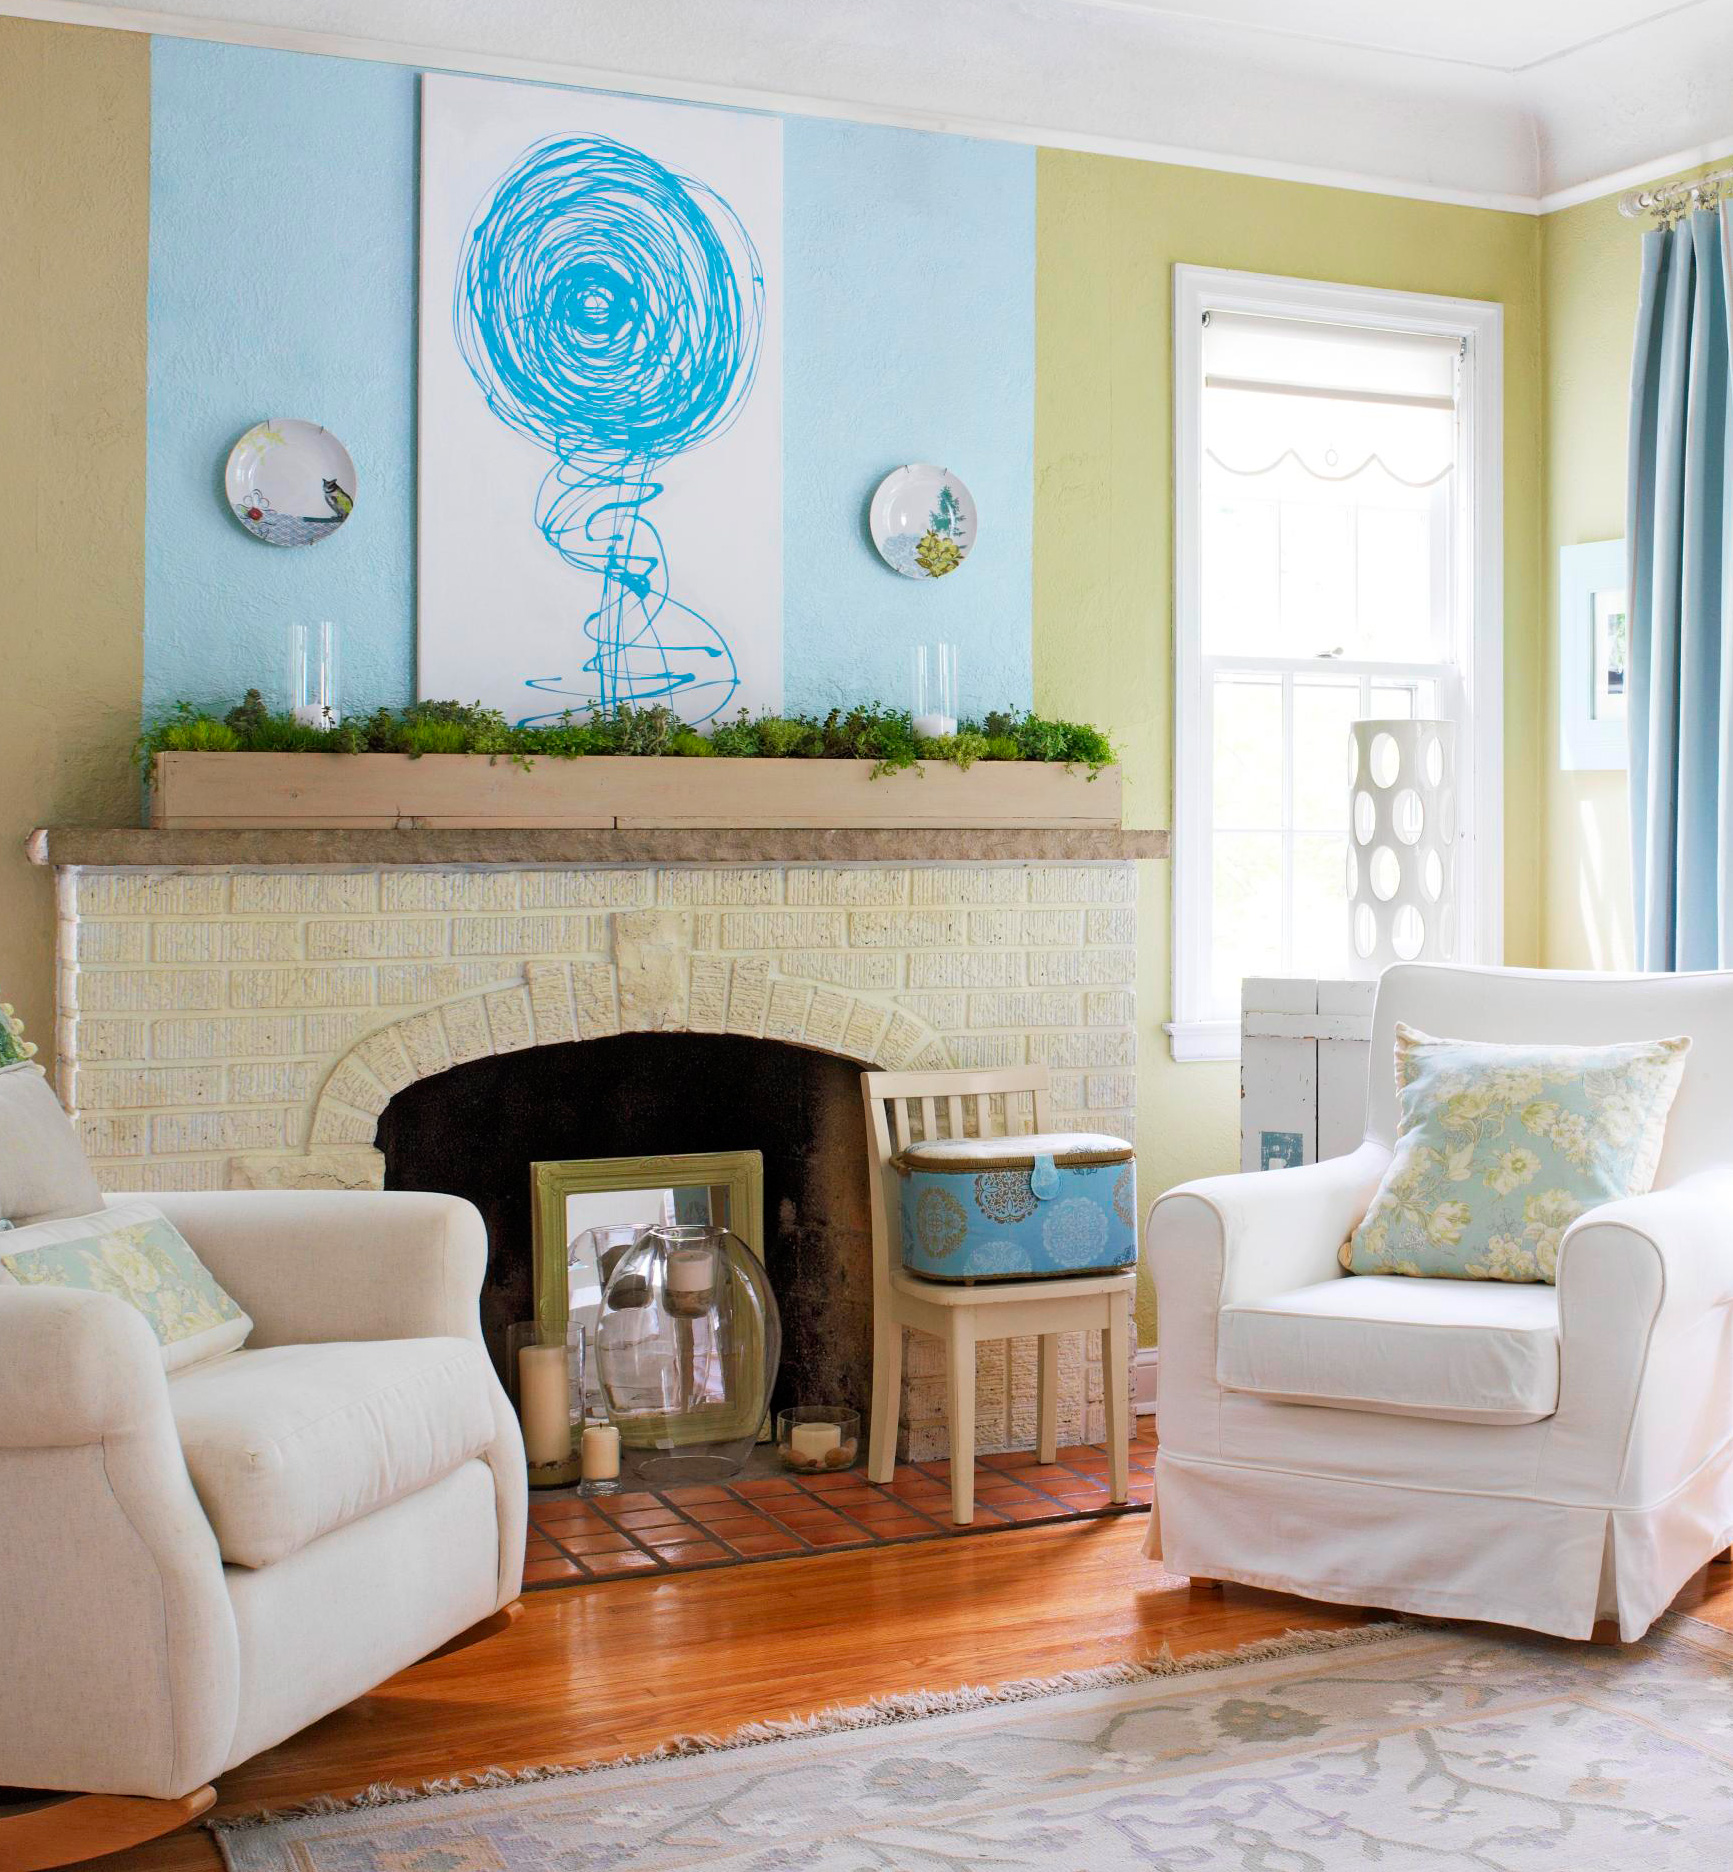 Paint a focal point